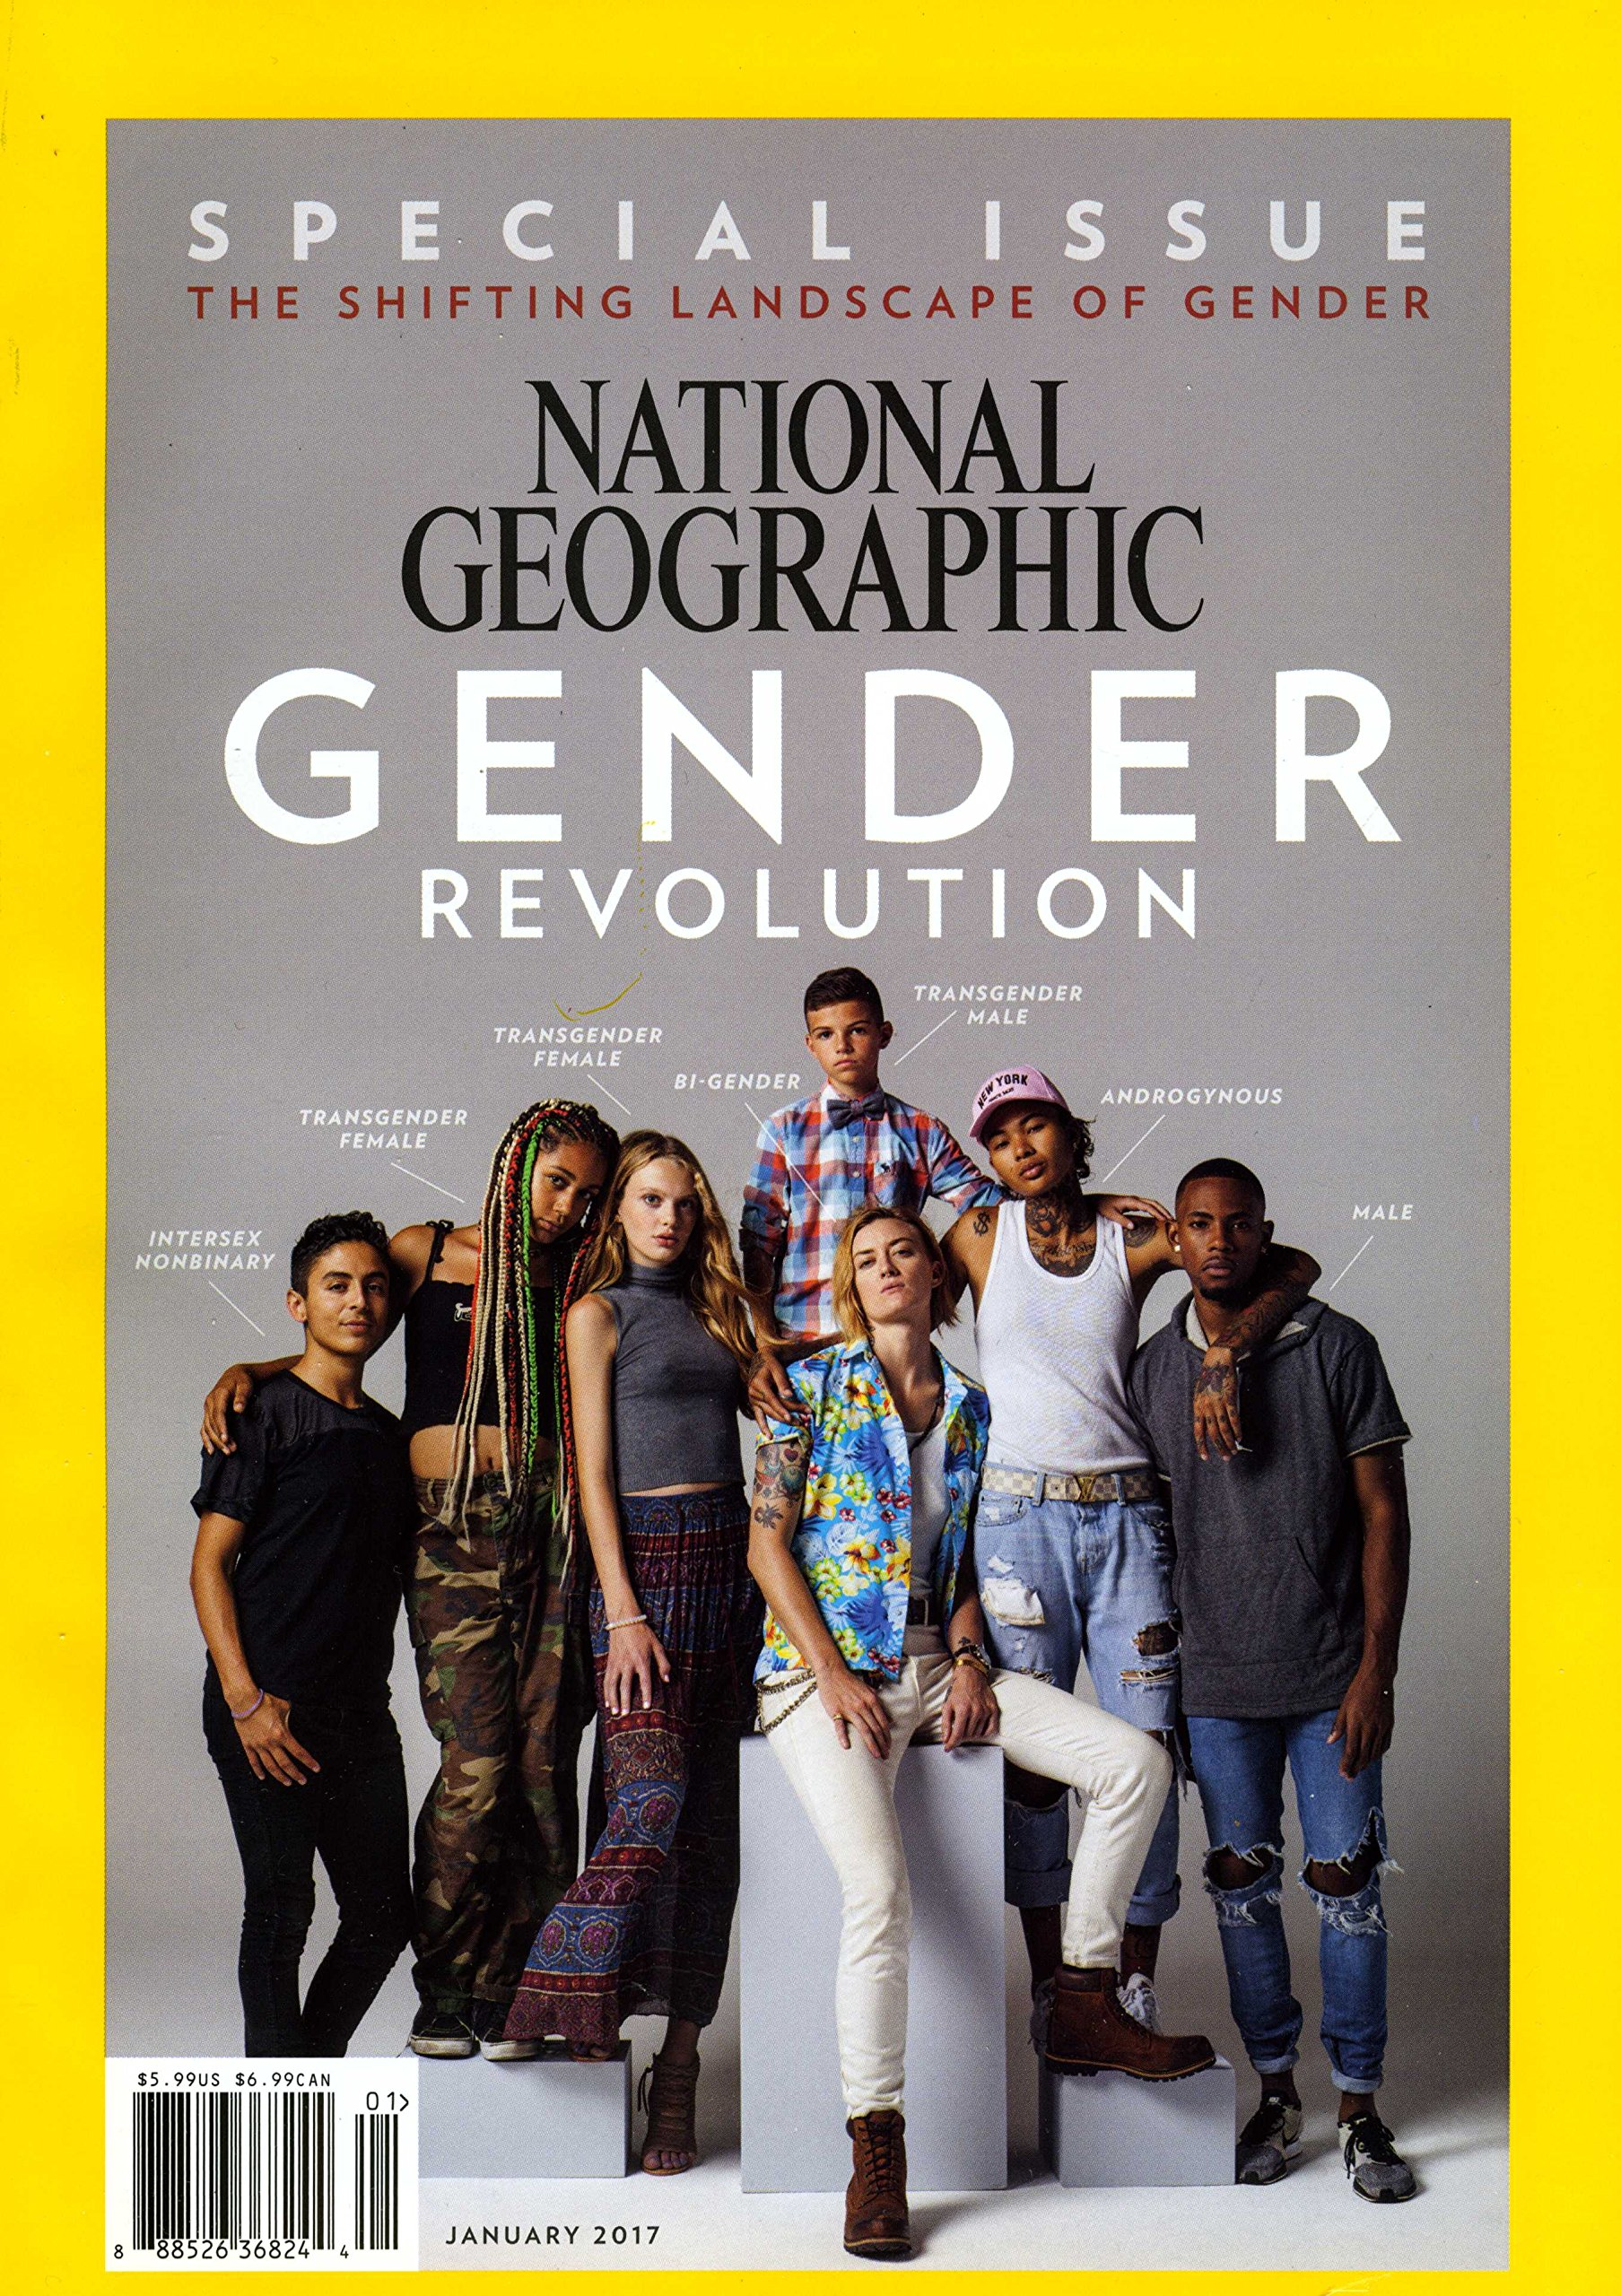 National geographic channel sexual identity